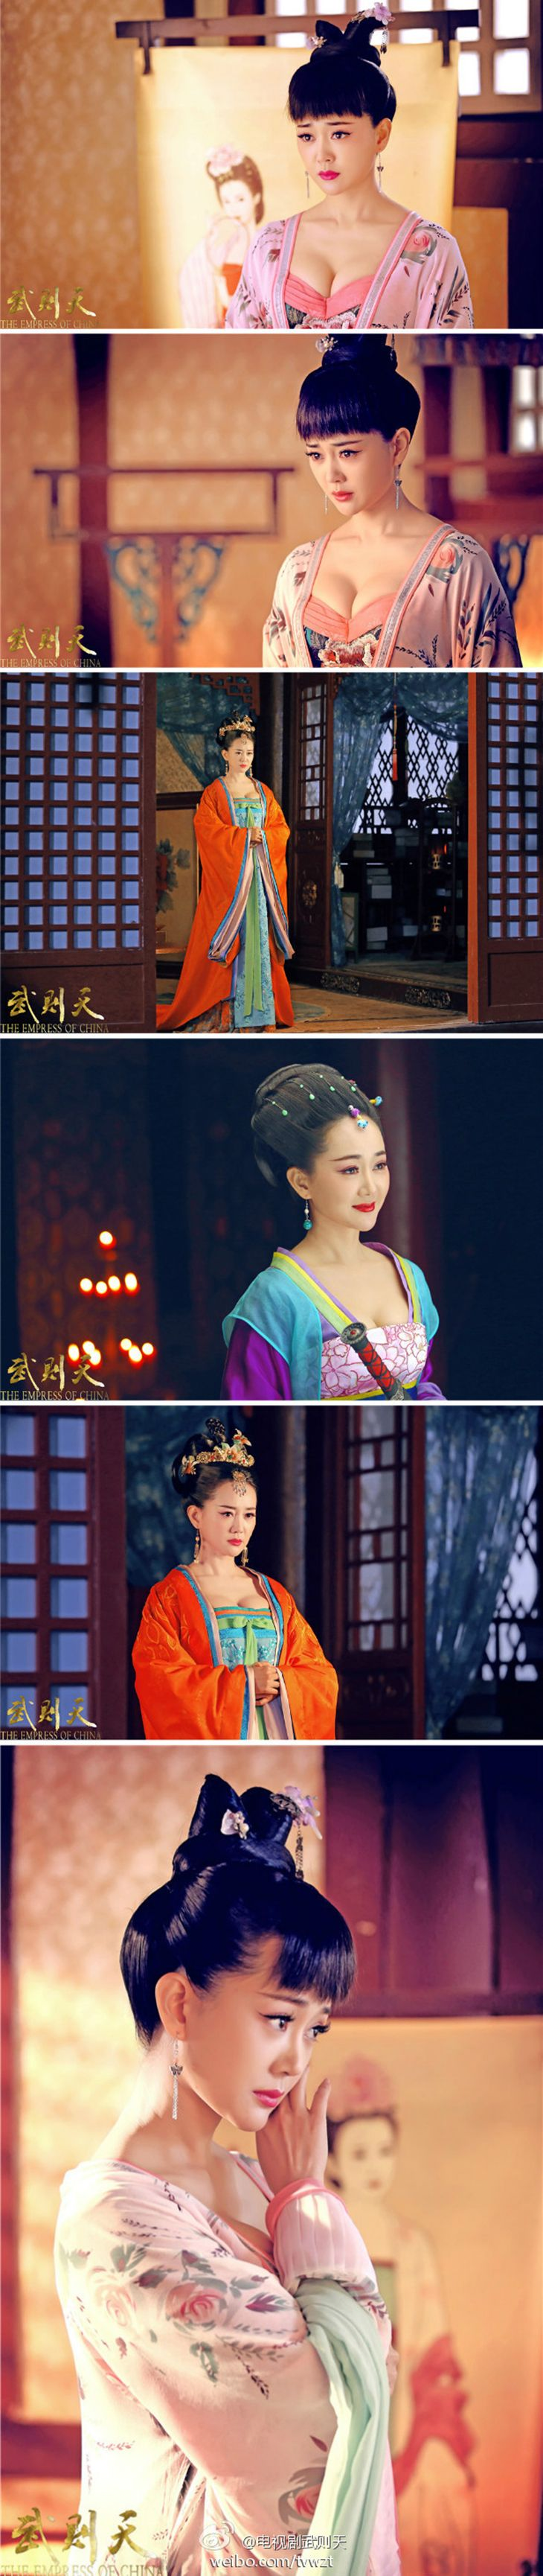 The Empress of China 武则天 Wu Zetian - Ancient Series Discussions - Ancient Chinese Series & Wuxia